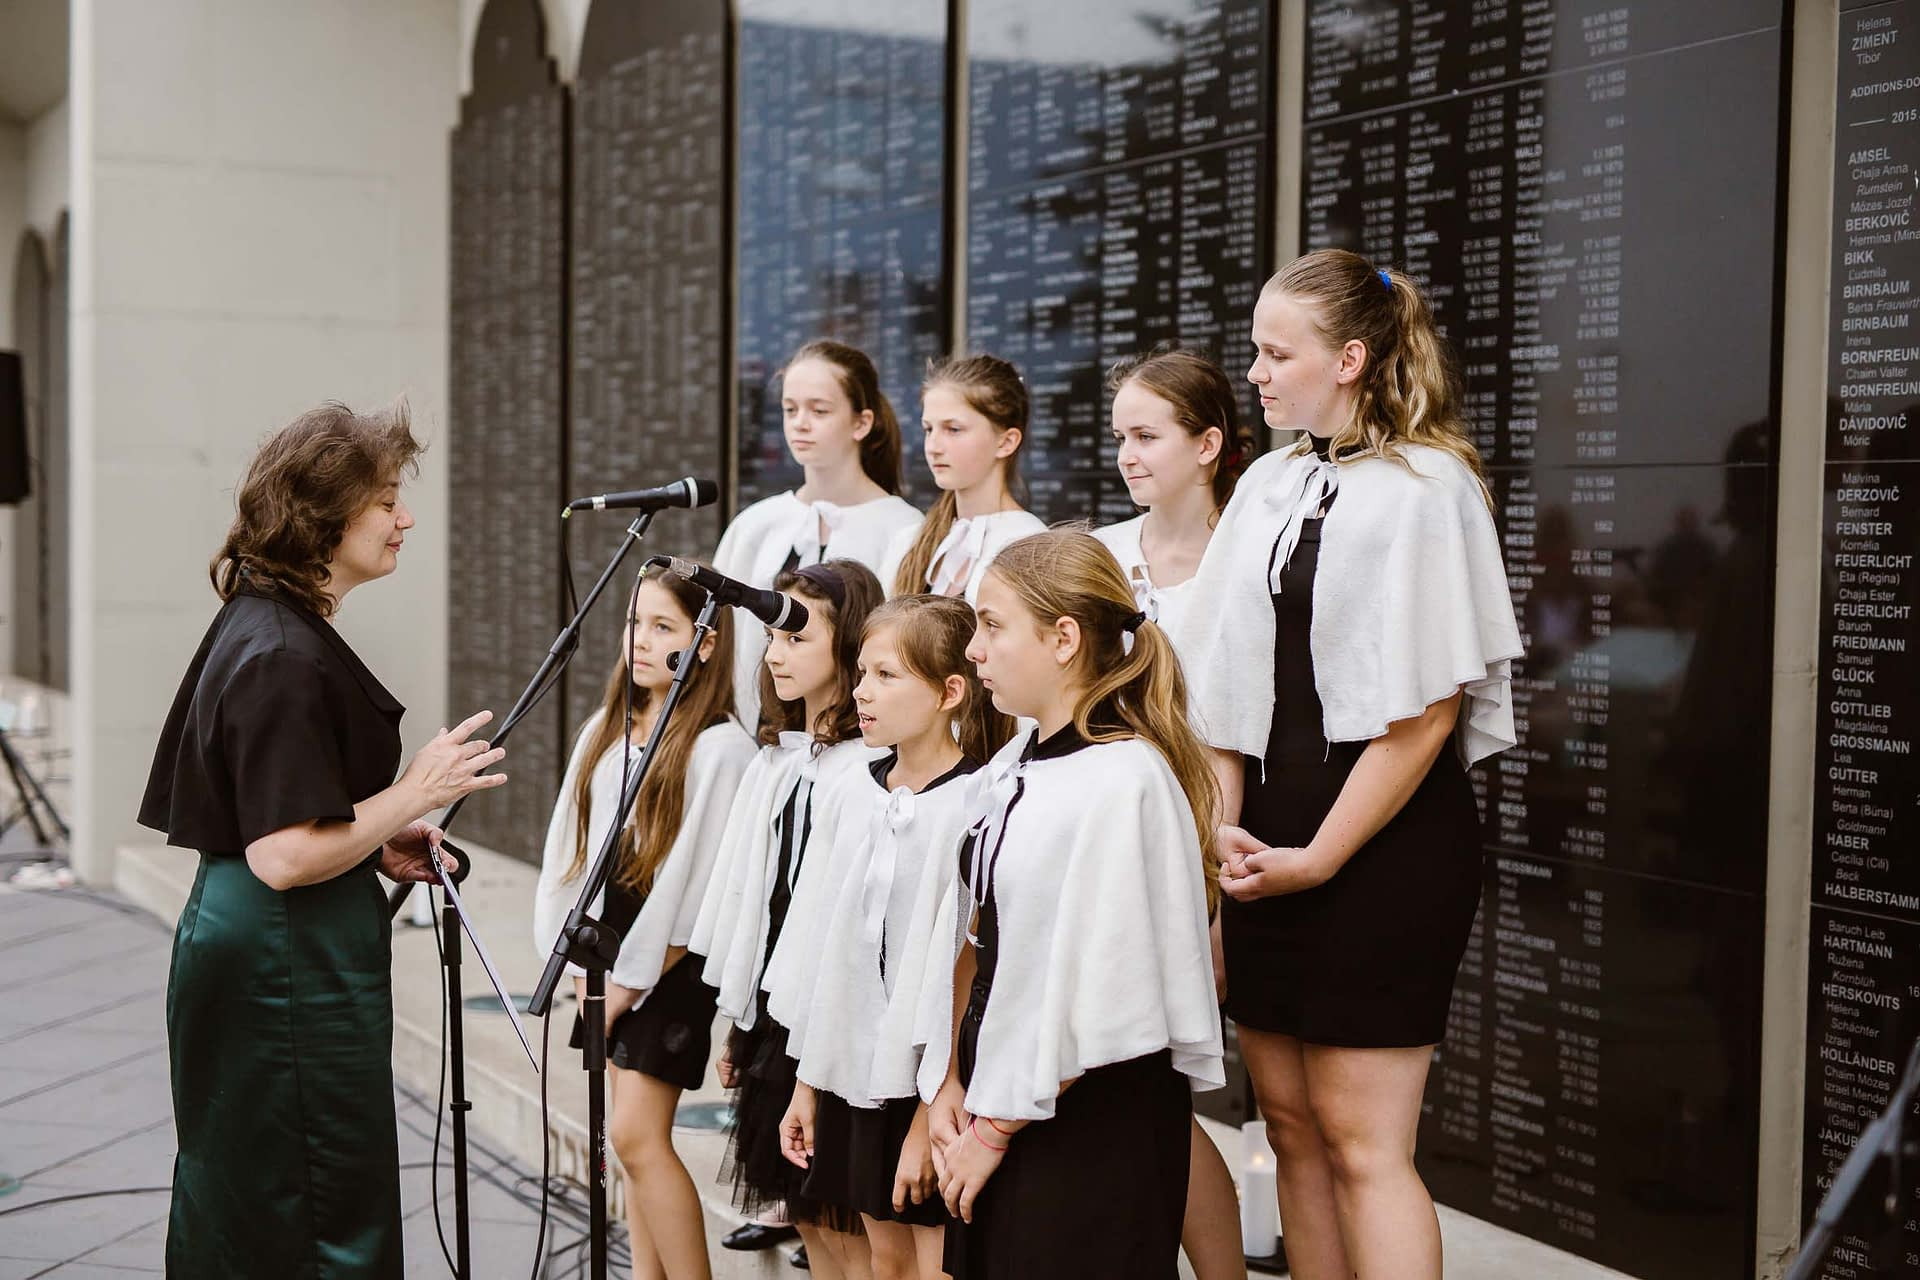 Local children's choir sang the Hebrew song Yaldut Nishkachat (a Forgotten Childhood)